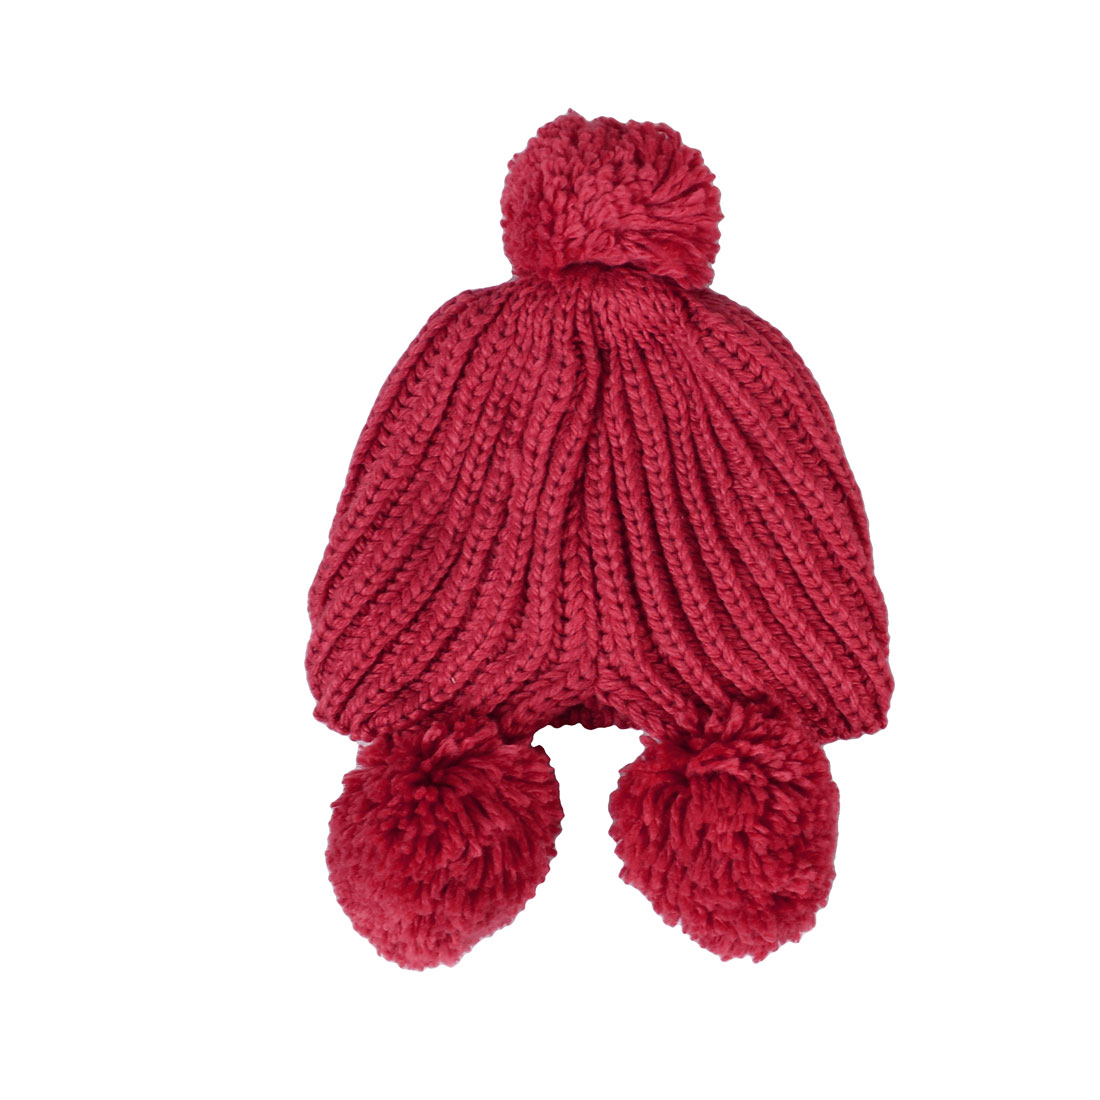 Lady Glittery Crystal Inlaid Red Knit Earflap Beanie Pom-pom Detail Beanie Hat